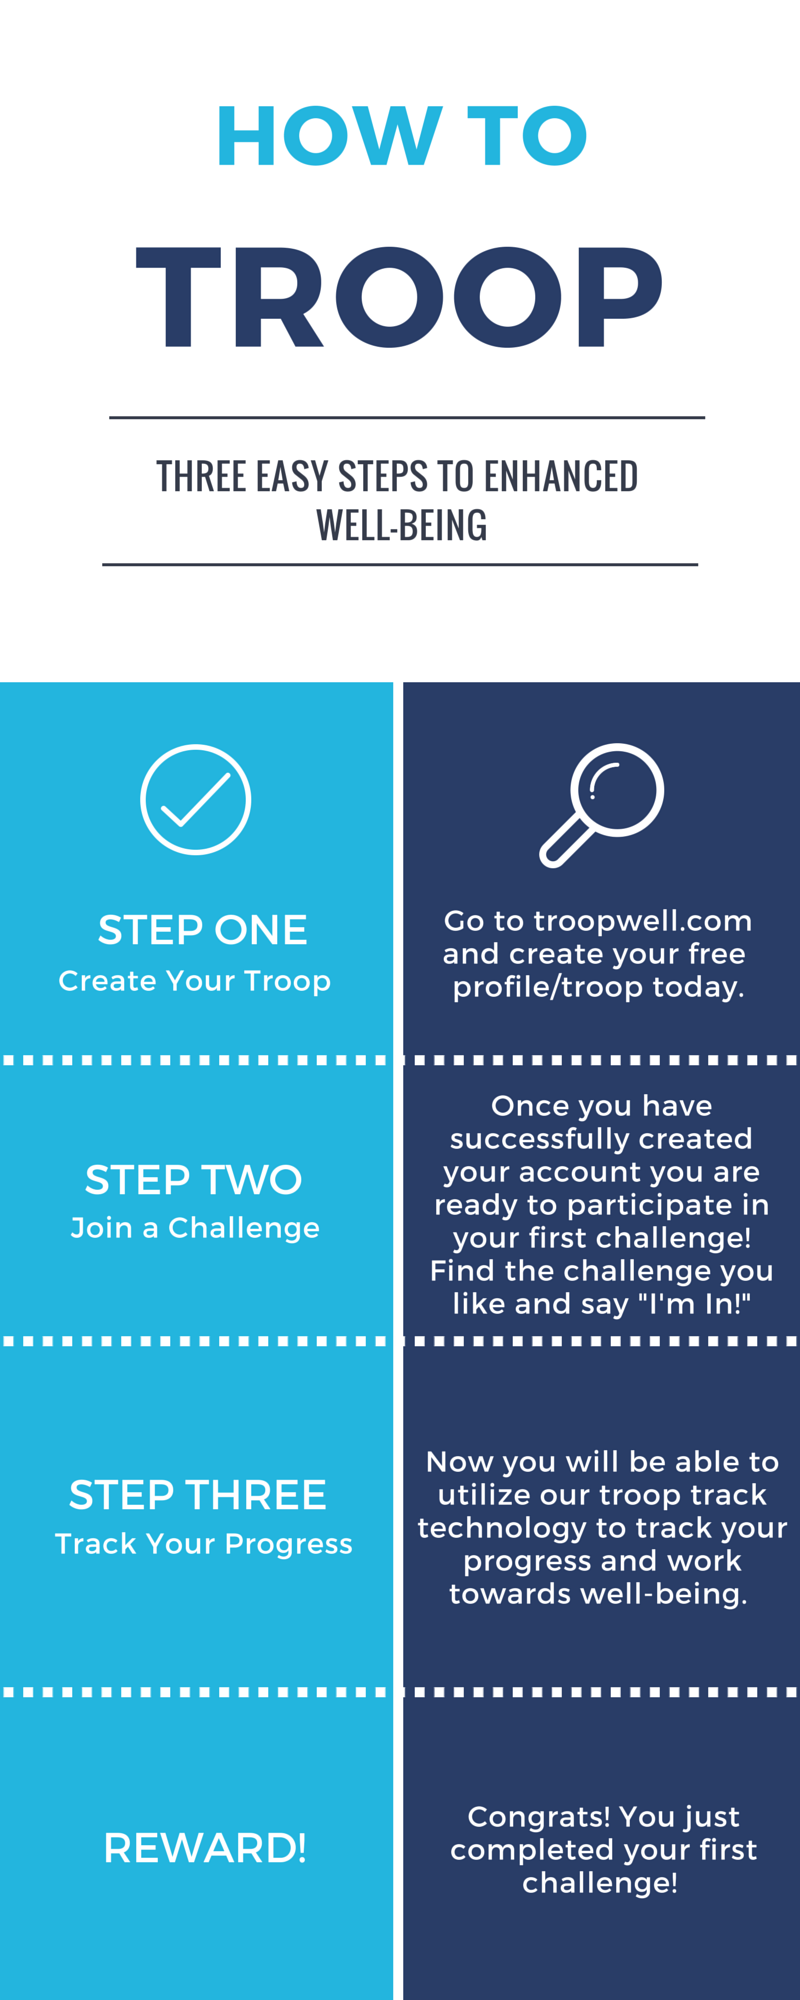 How to Troop - InfoG (4).png